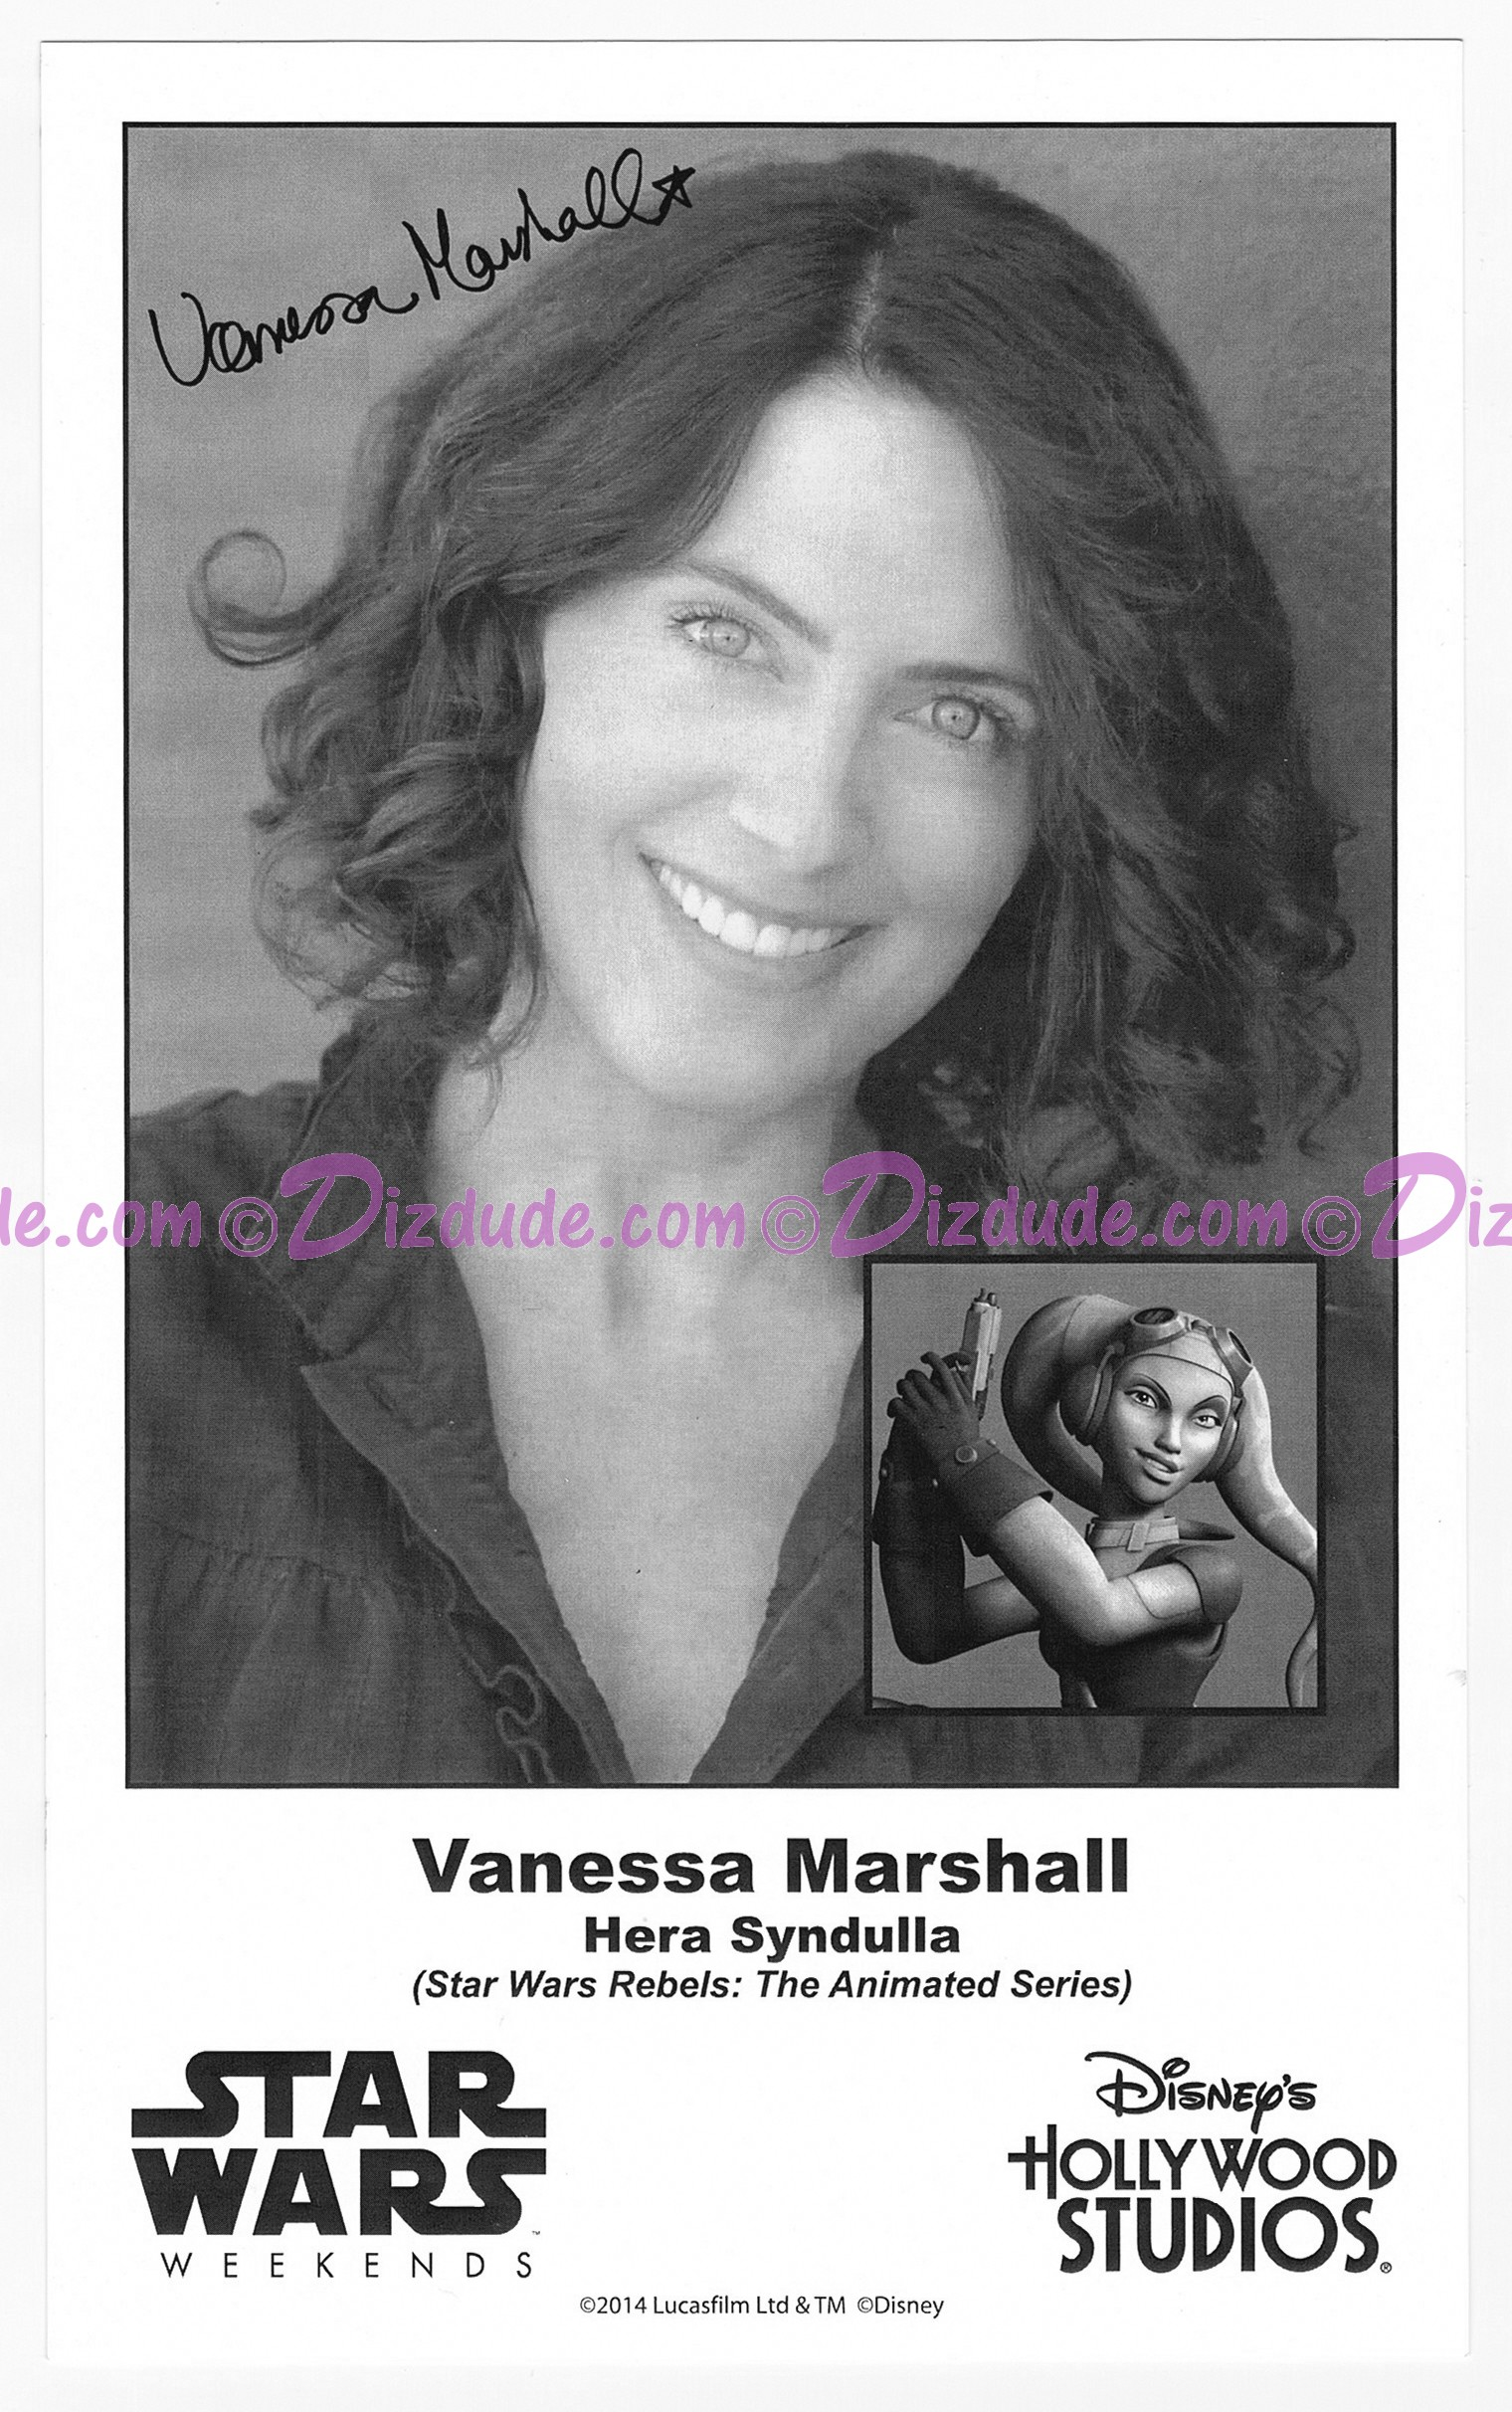 Vanessa Marshall the voice of Hera Syndulla Presigned Official Star Wars Weekends 2014 Celebrity Collector Photo